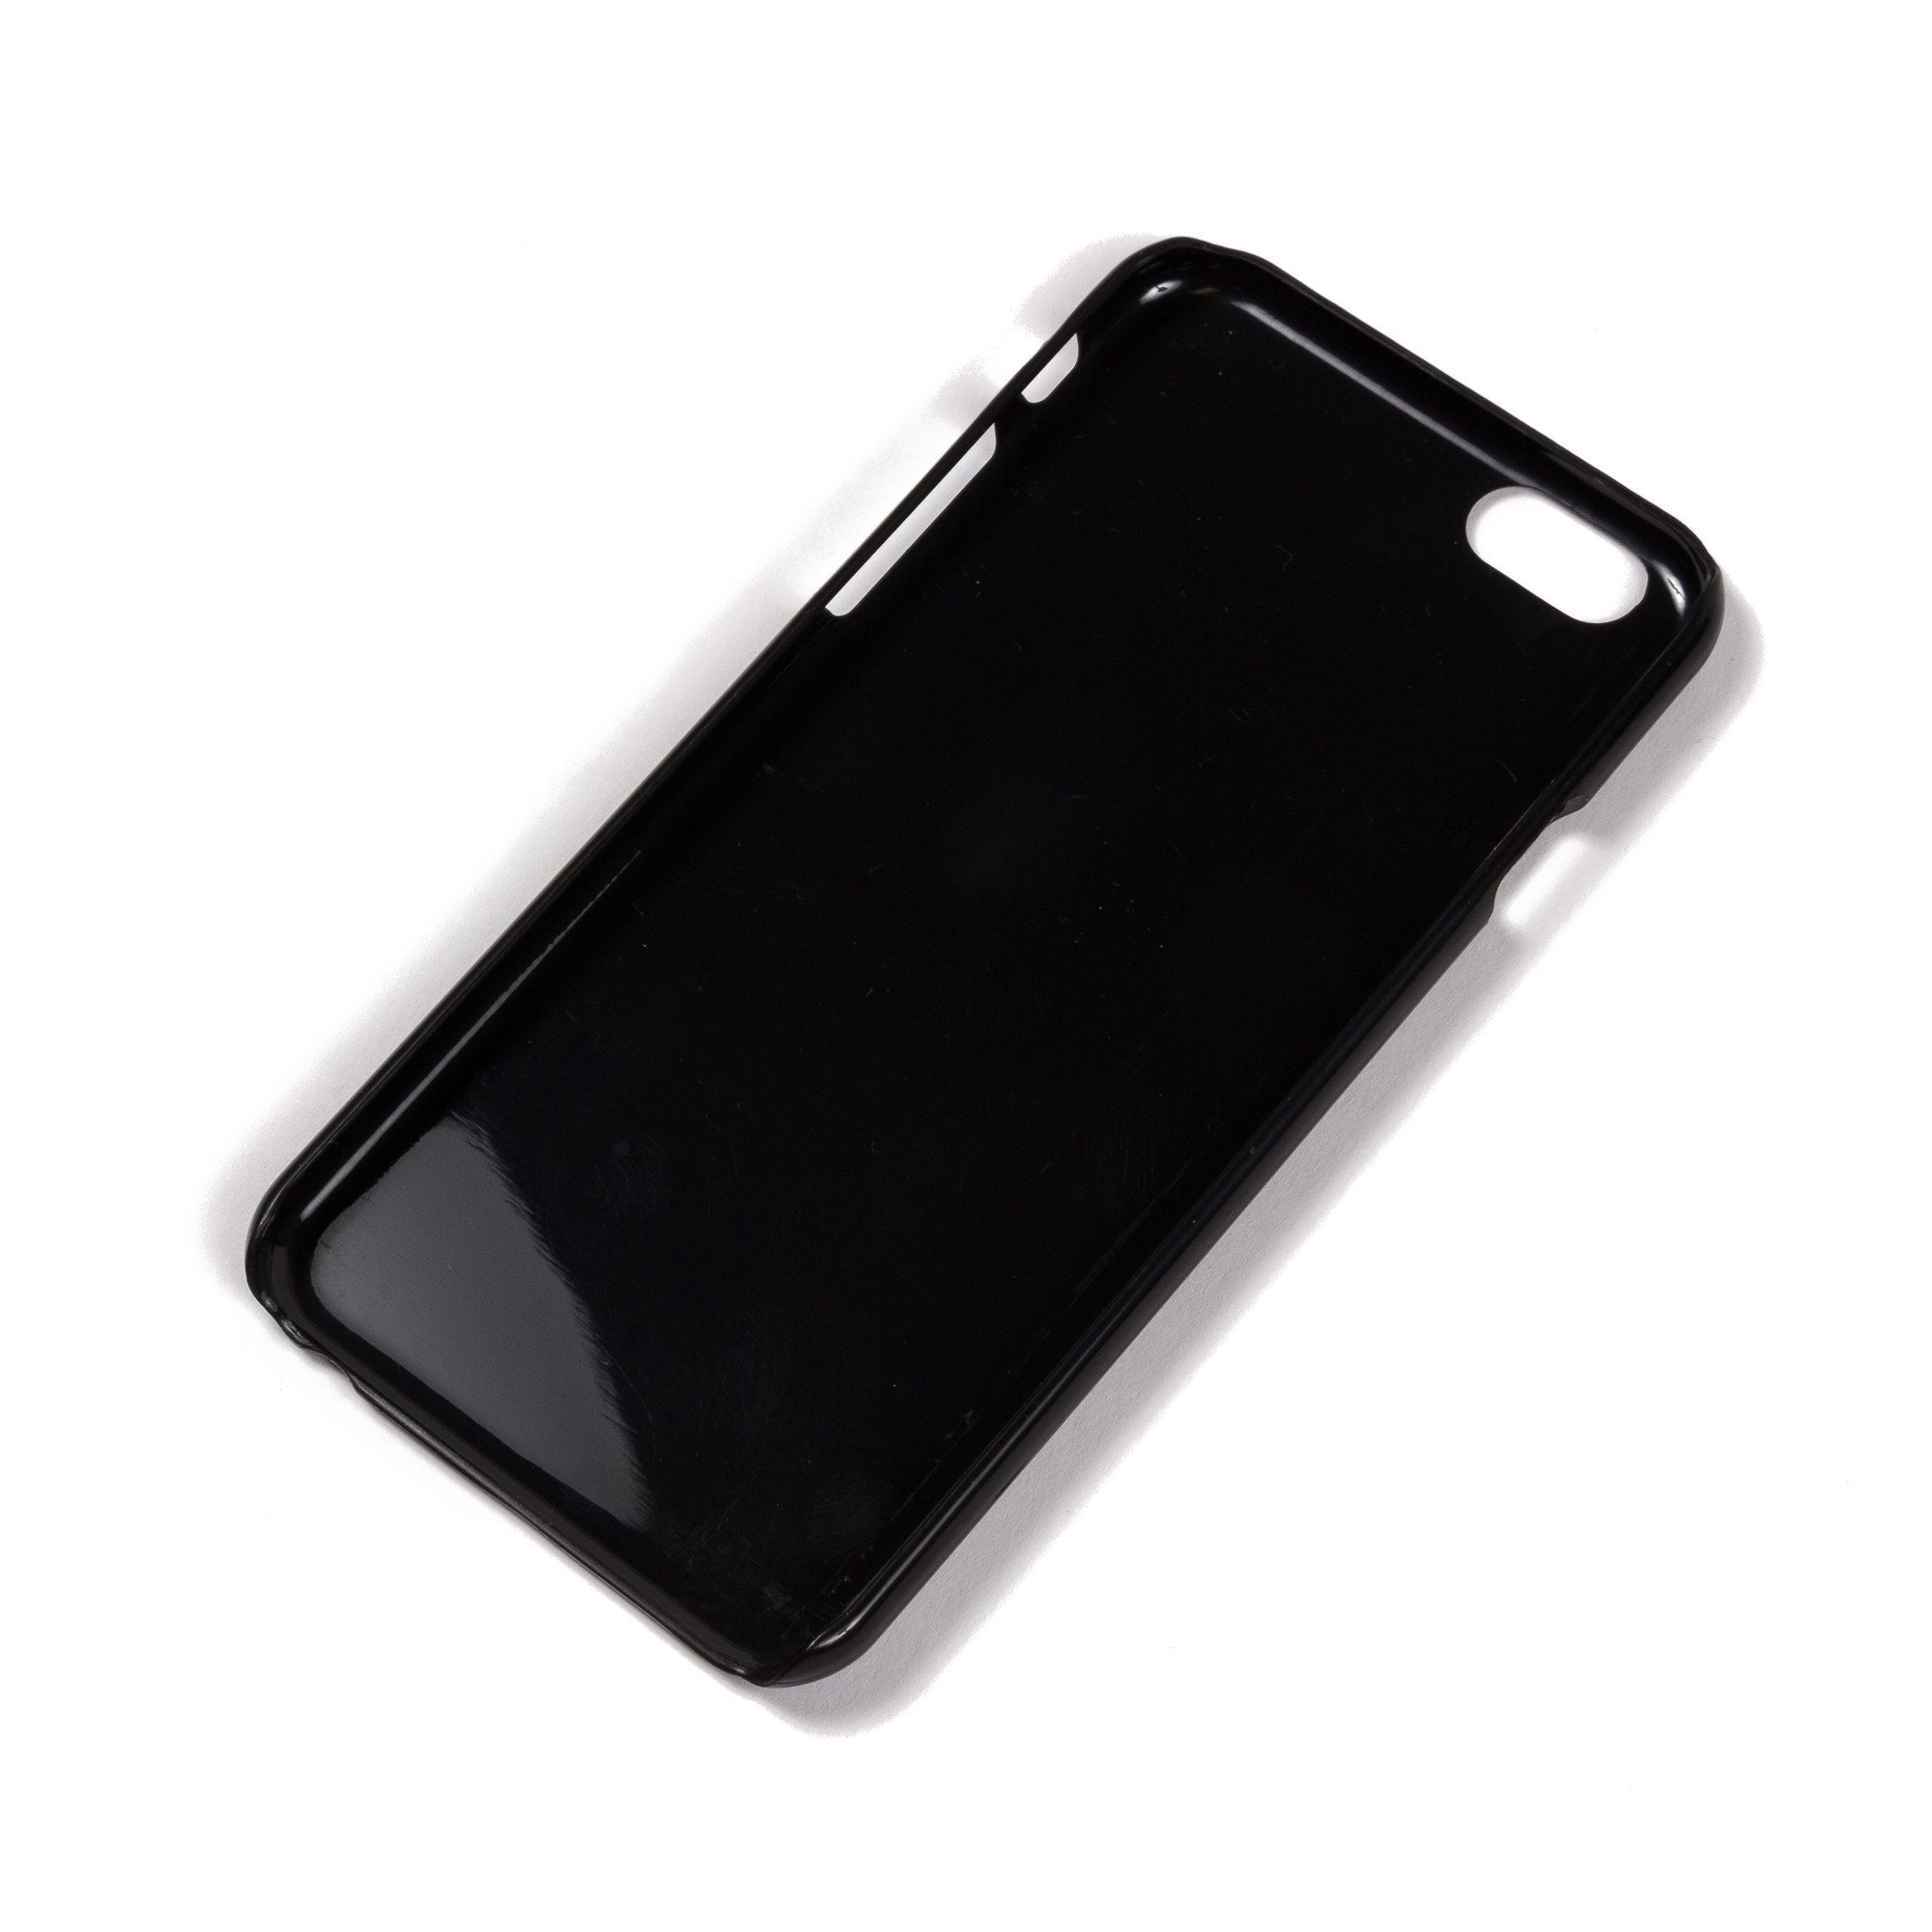 Slay - Black iPhone 6 Case